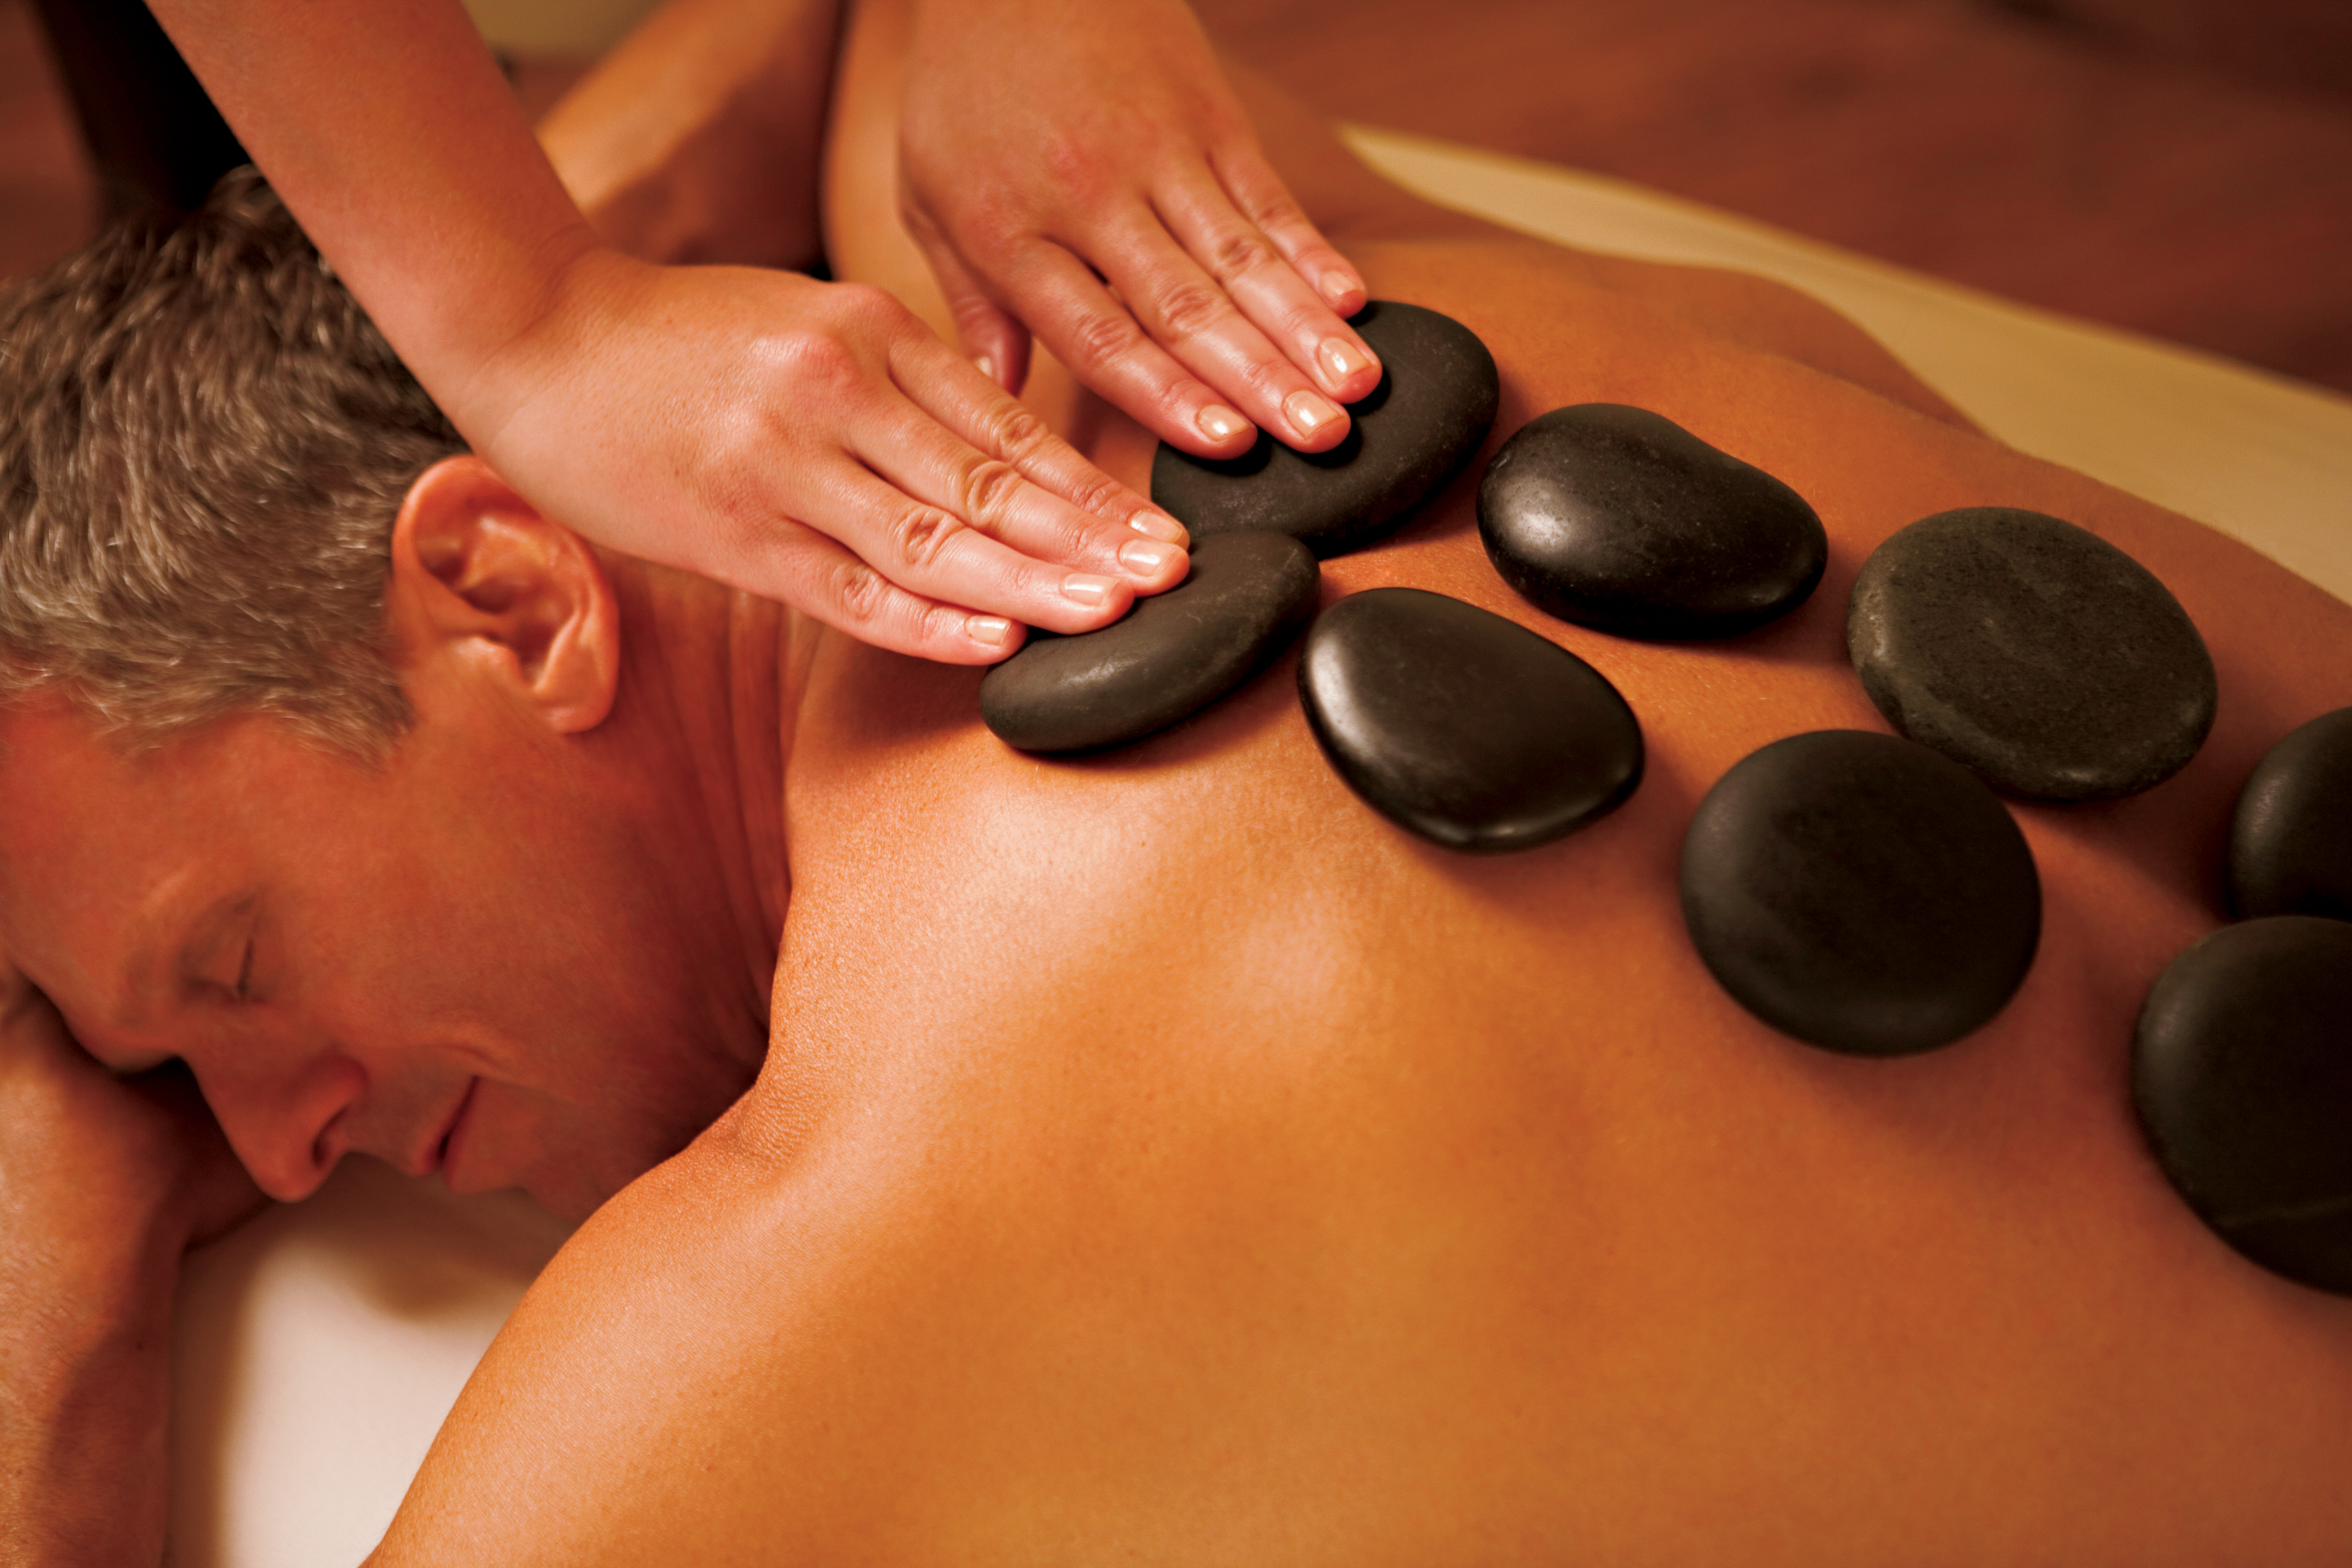 antropoti-concierge-service-croatia-massage-stones